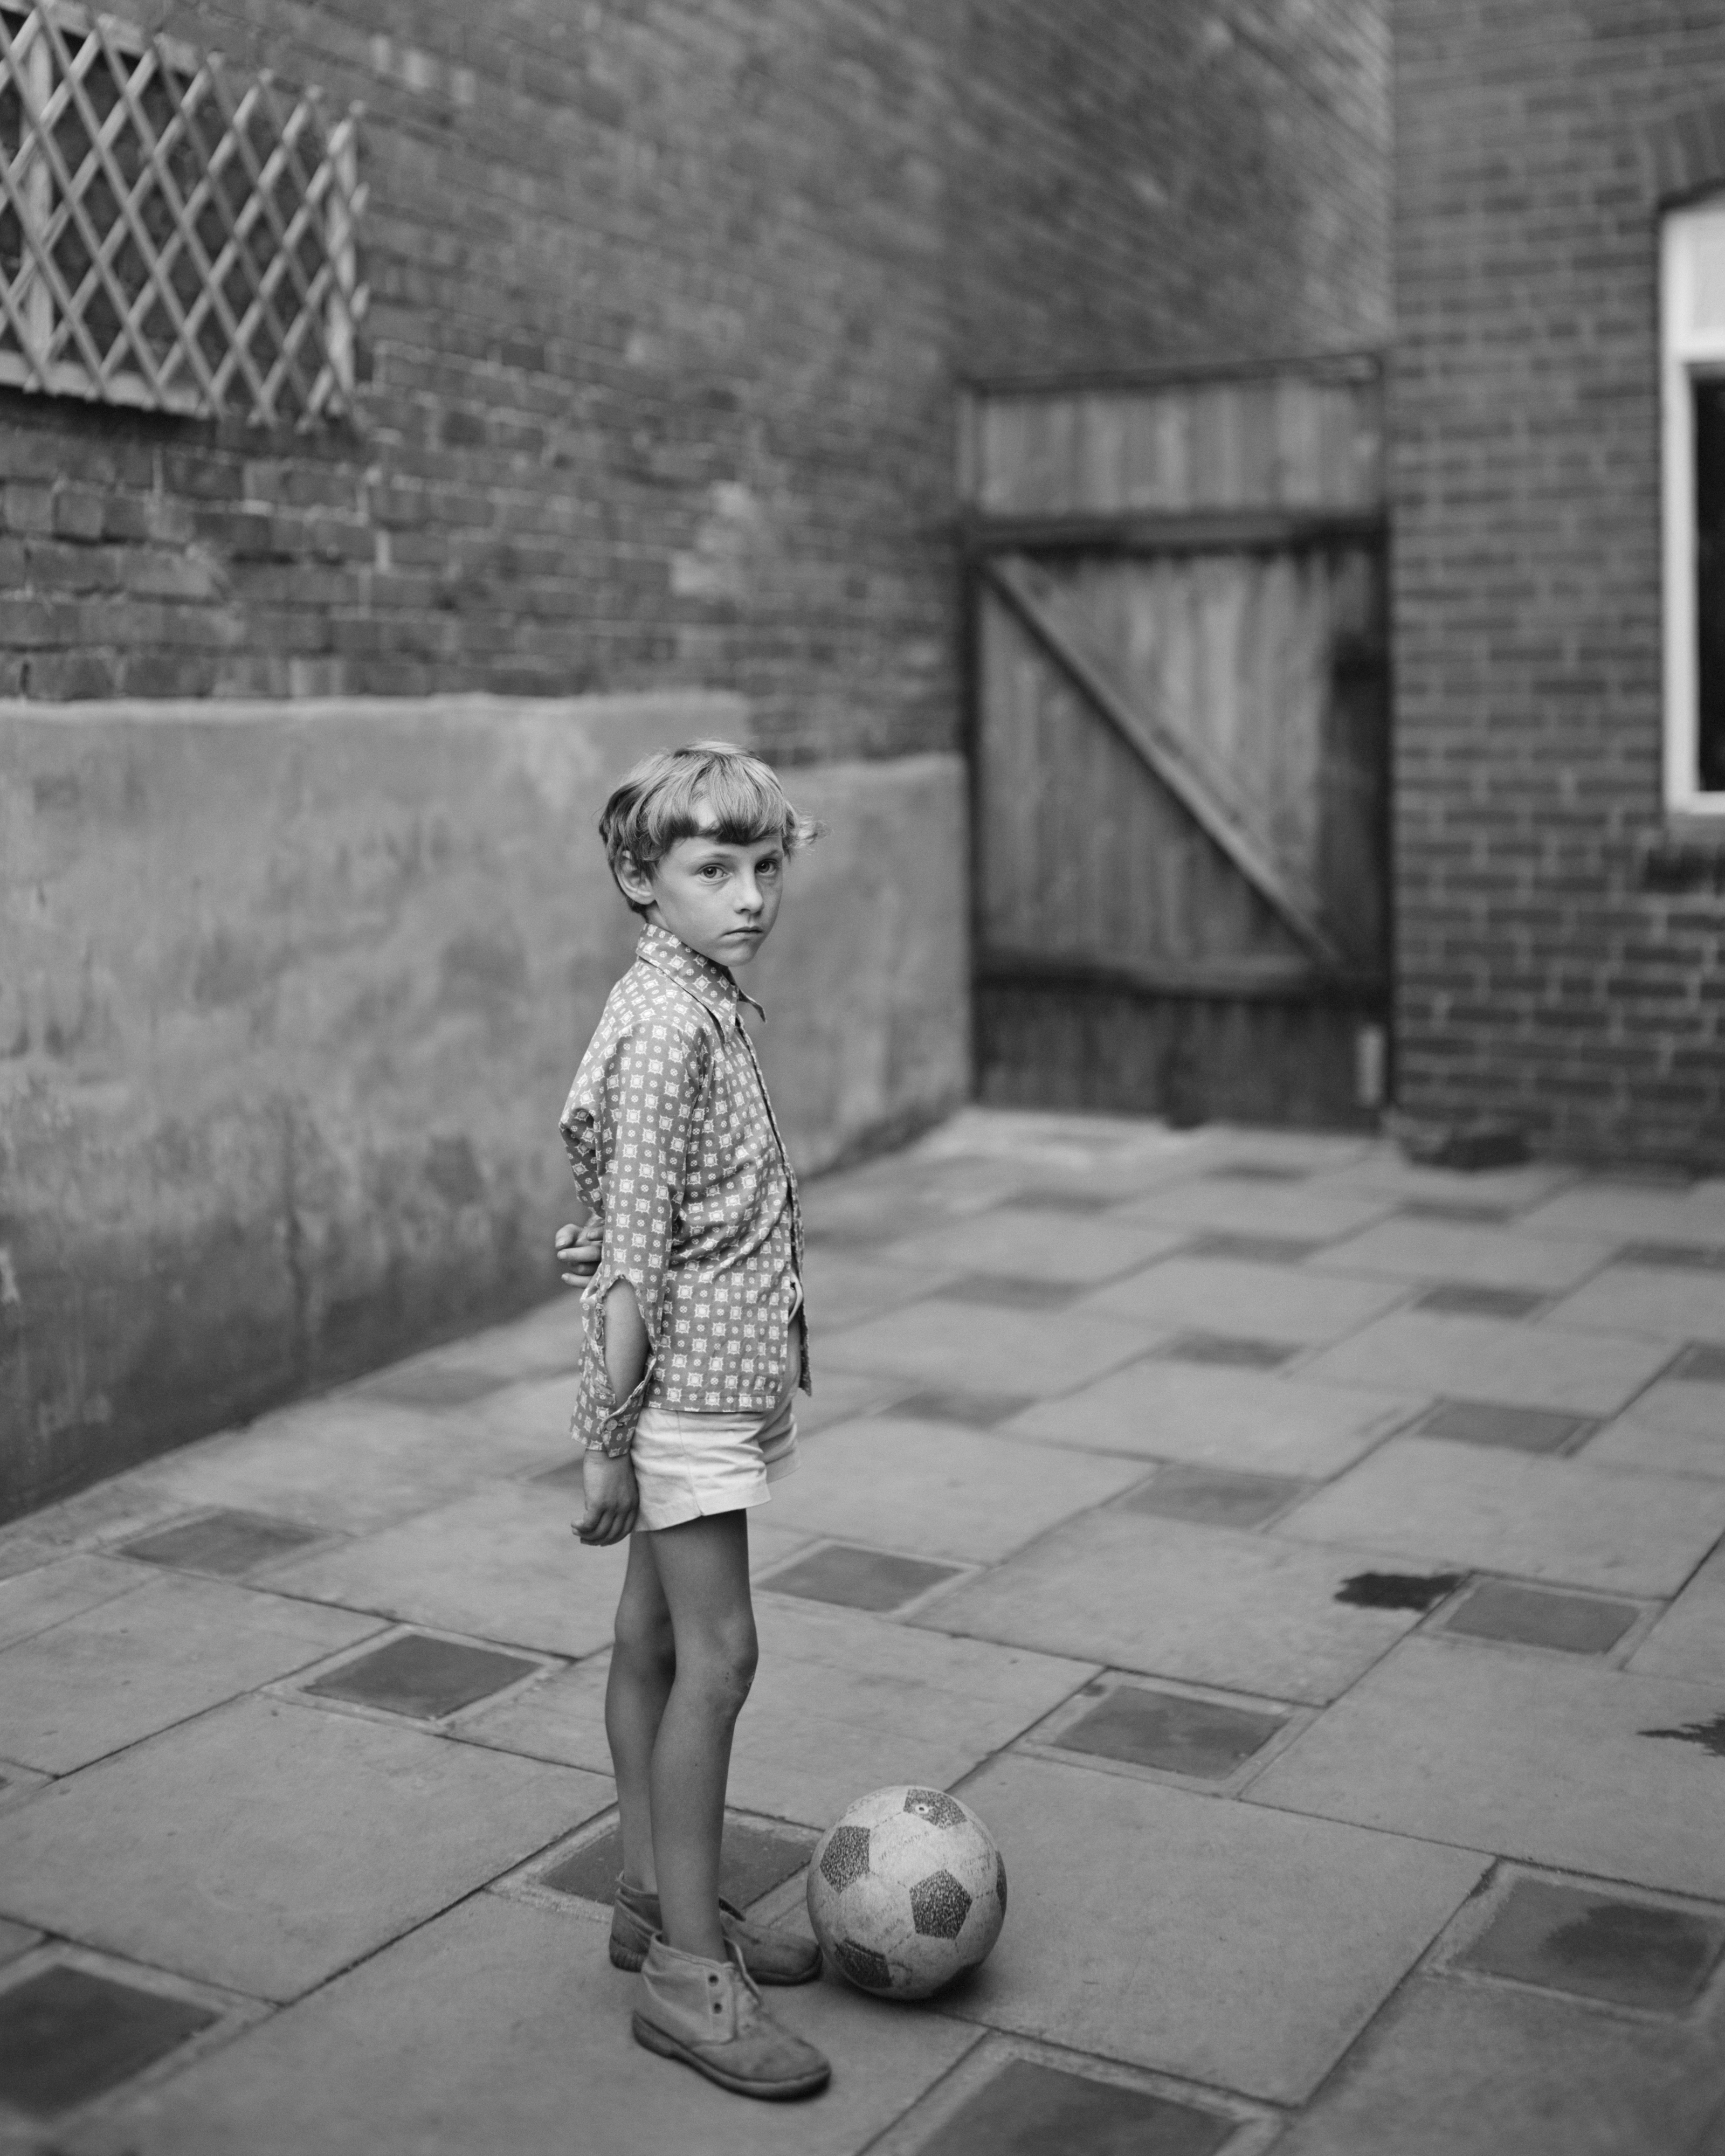 Boy with Ball, 1974